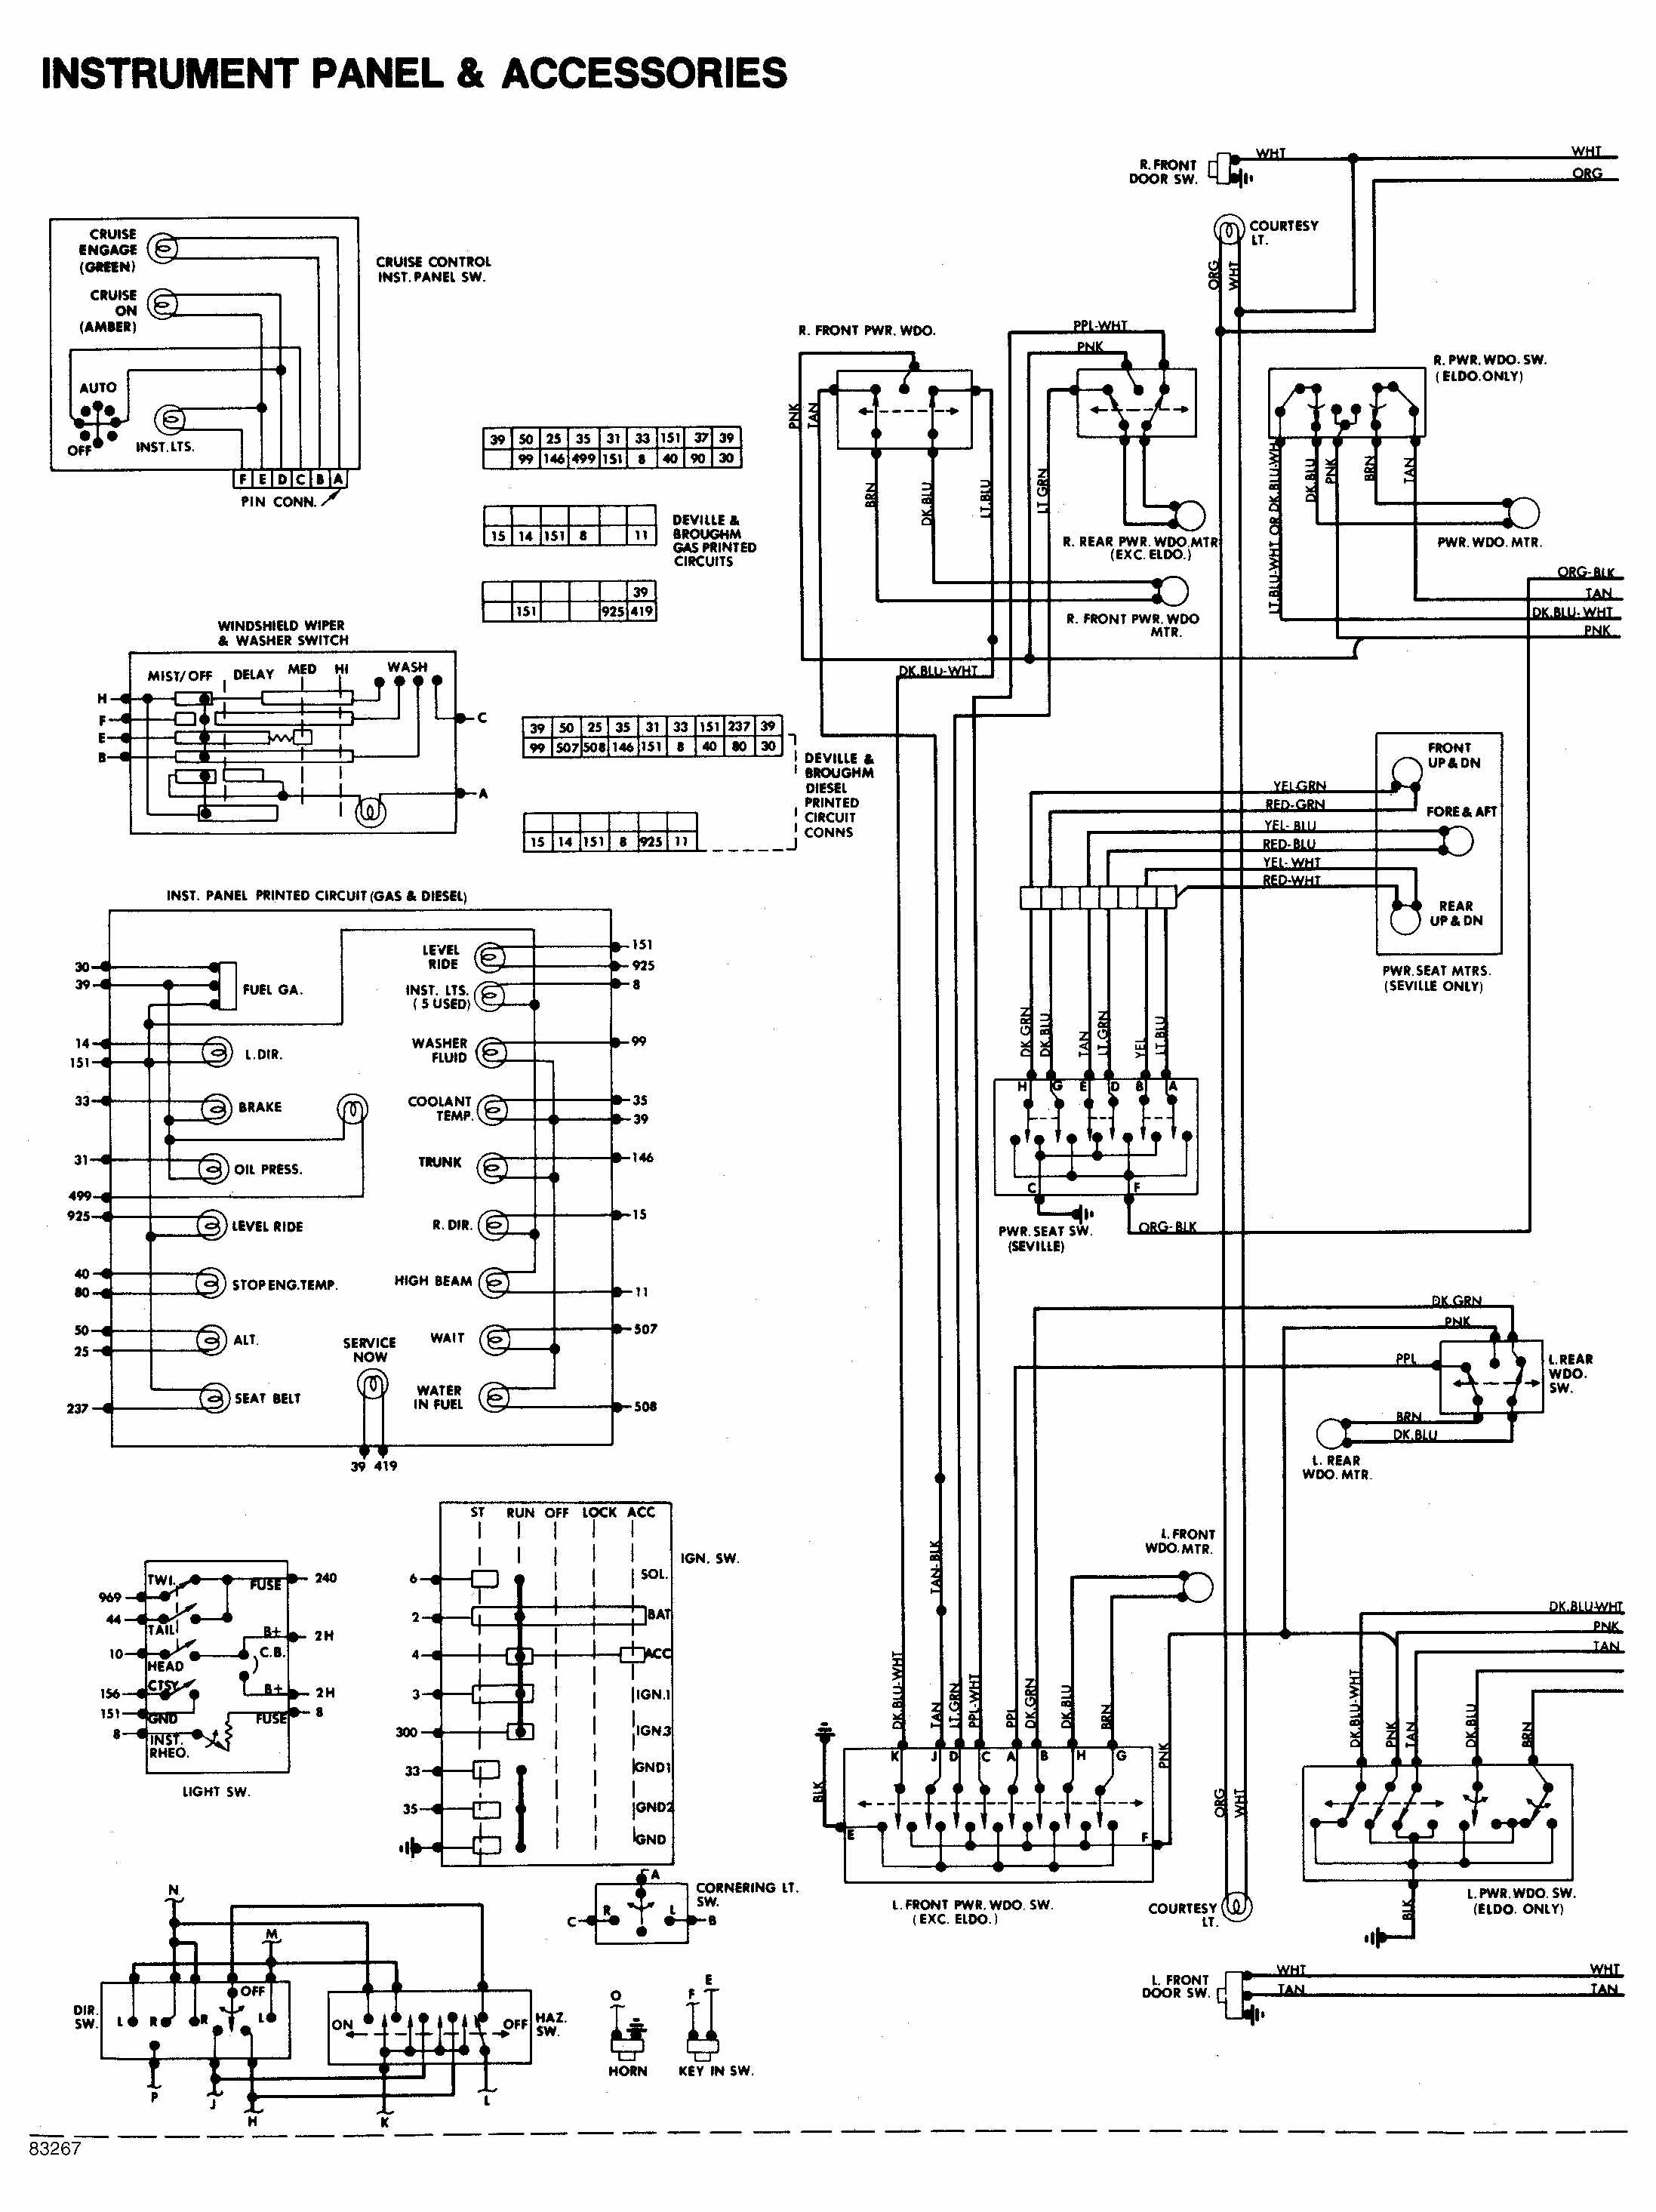 instrument panel and accessories wiring diagram of 1984 cadillac deville chevy diagrams GMC Engine Wiring Harness Diagram at edmiracle.co